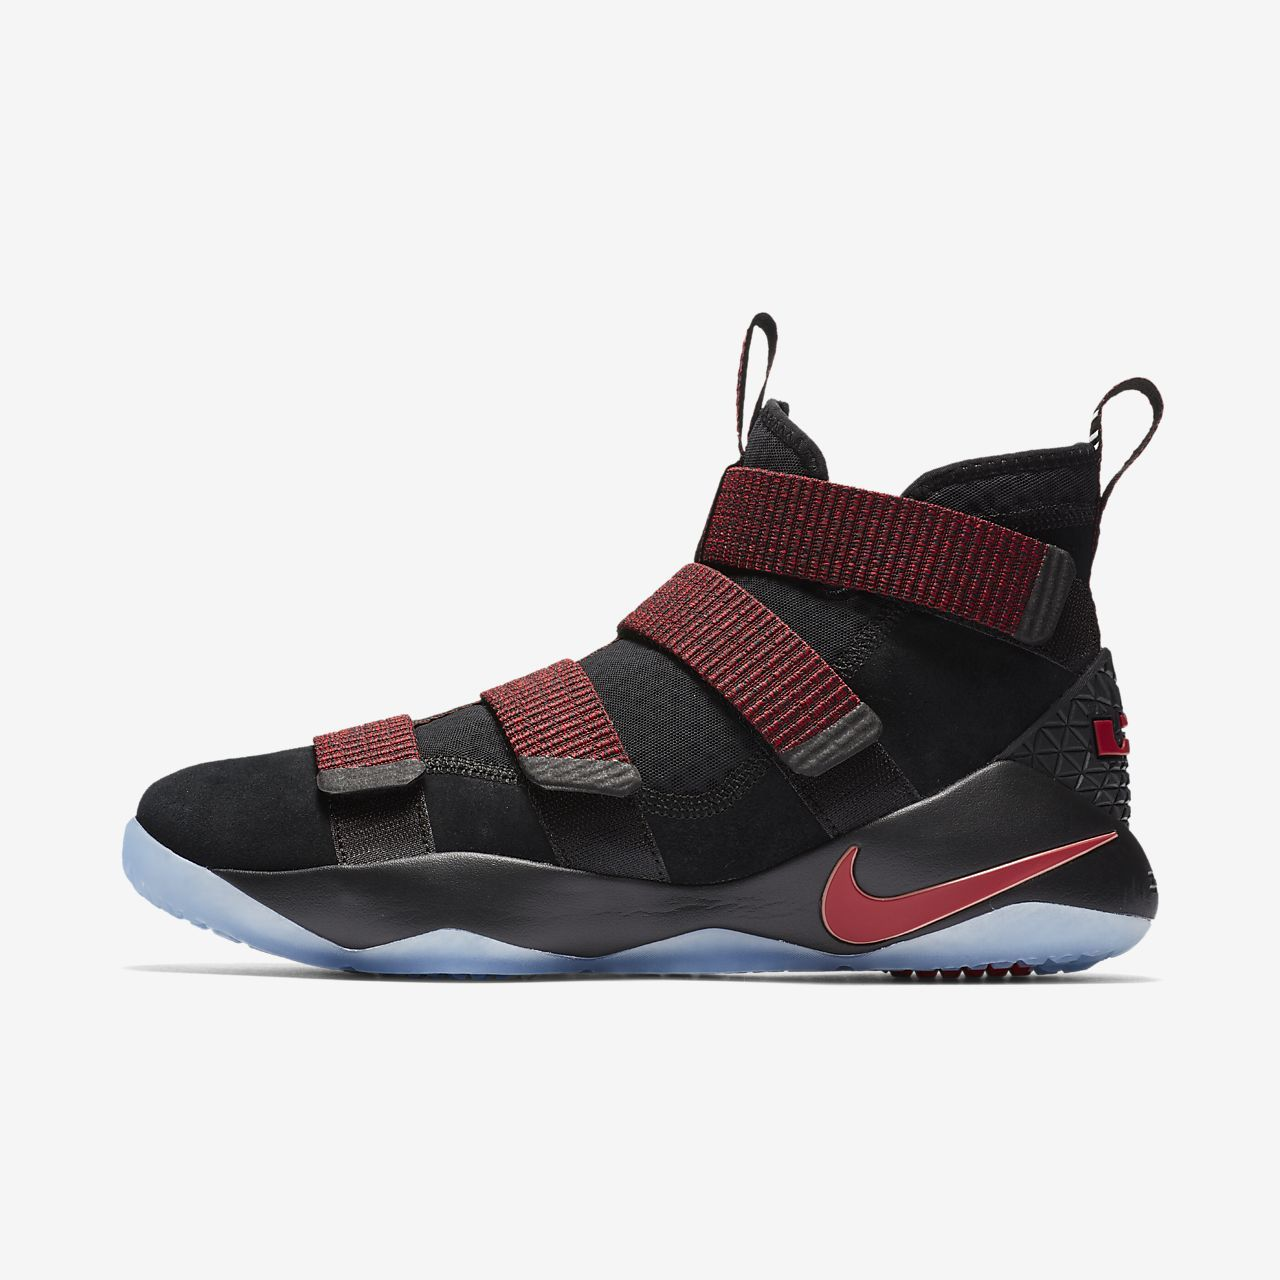 Nike LeBron Soldier 11 Black and Gold For Sale